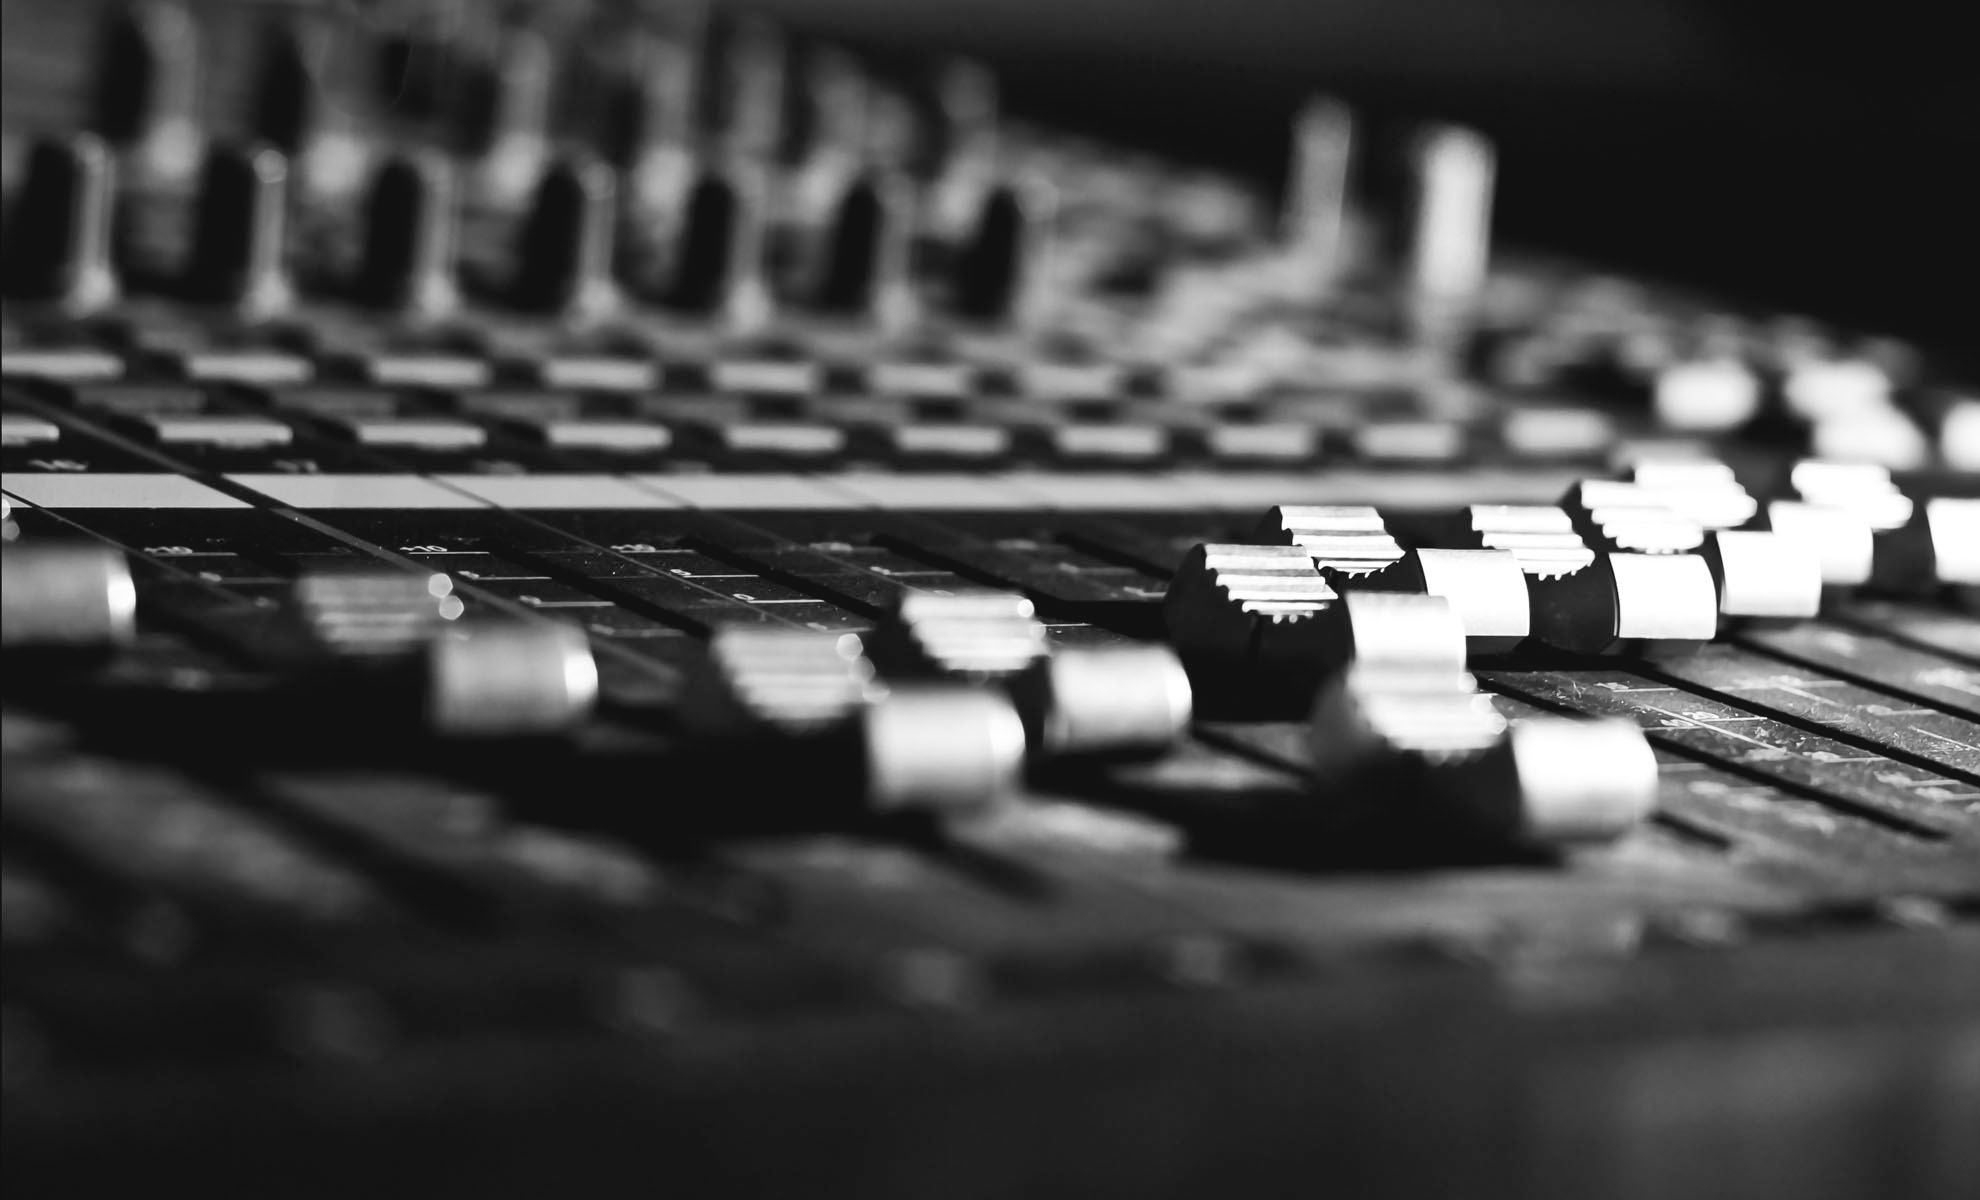 A picture of a audio mixing console.